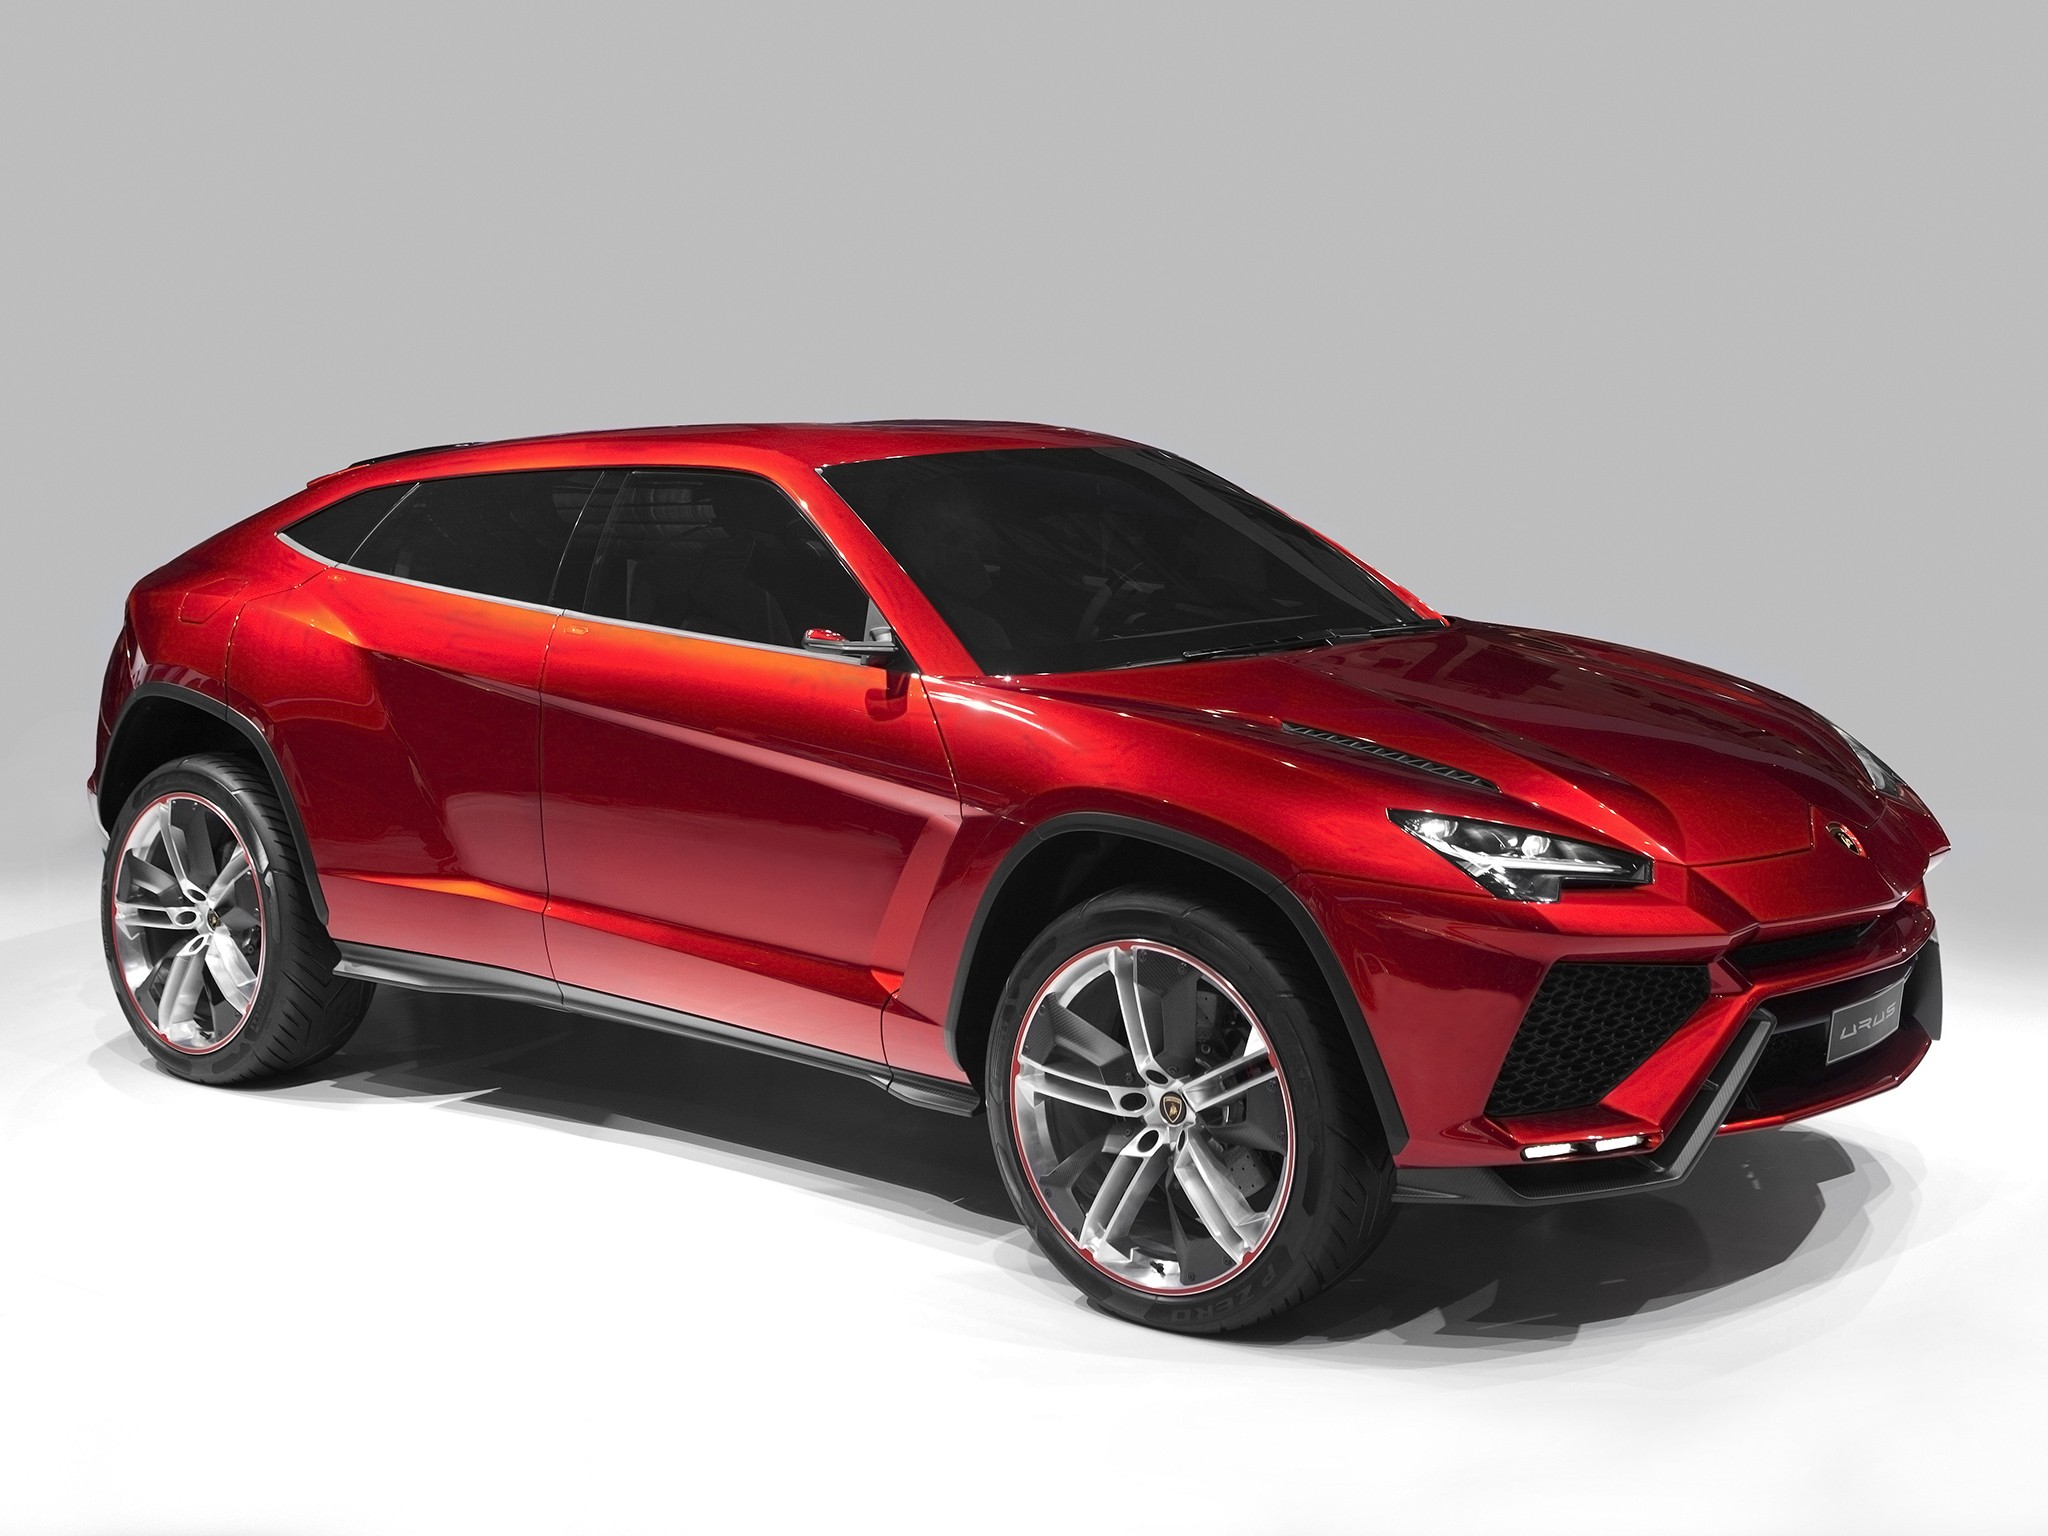 Lamborghini urus confirmed to use 4 liter twin turbo v8 for Newspaper wallpaper for sale